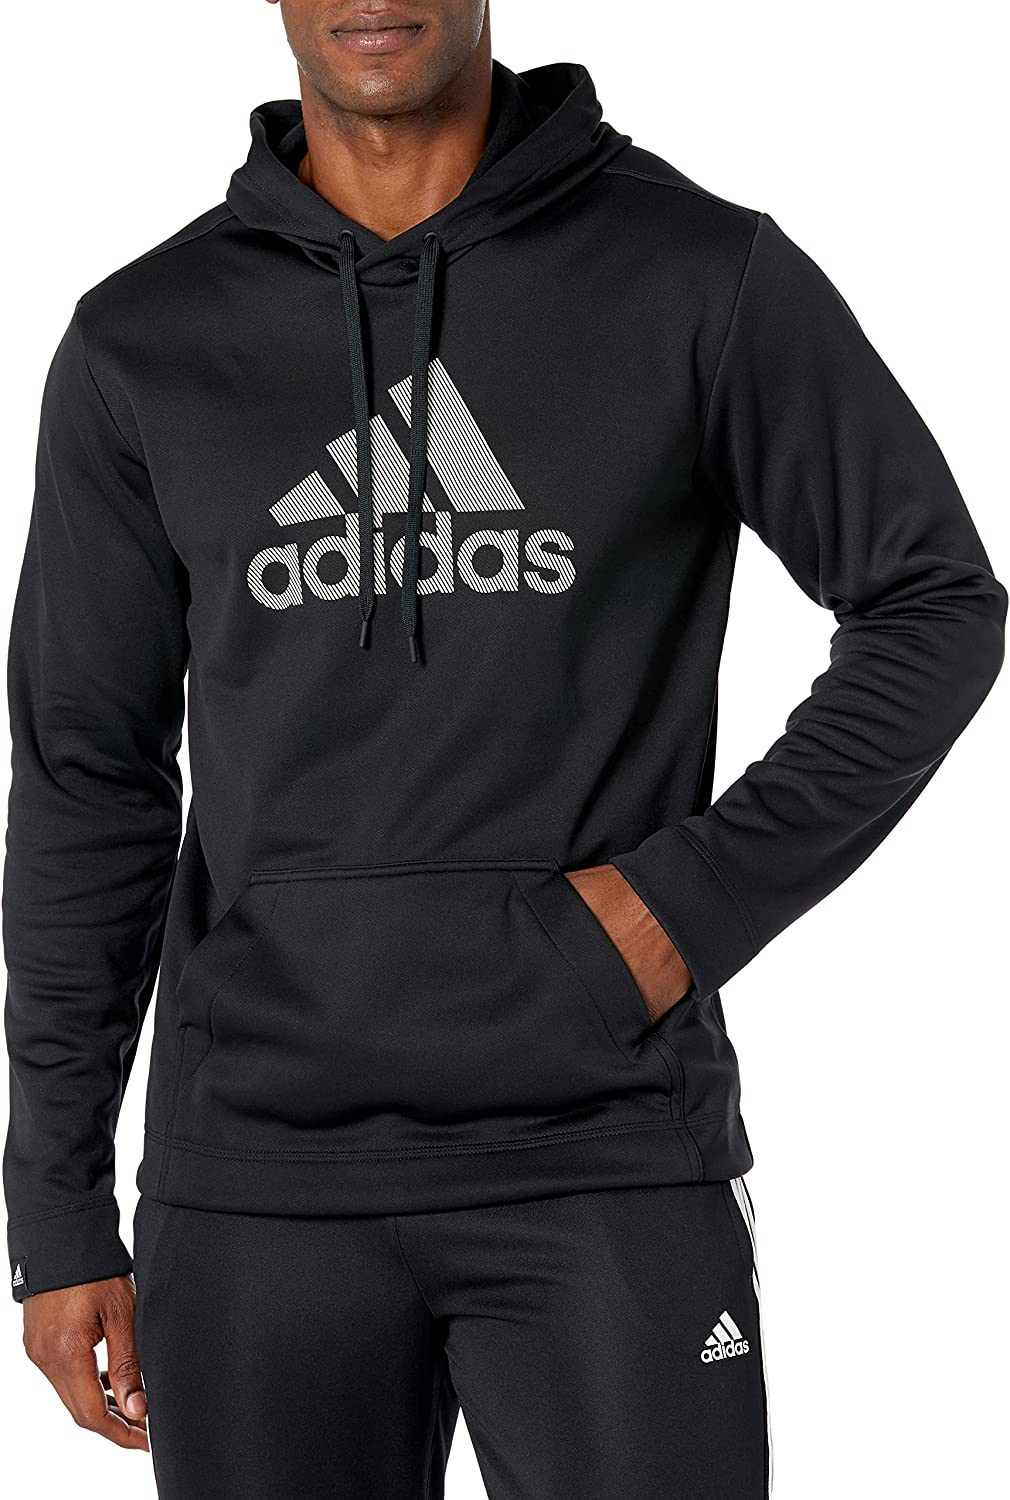 adidas Men's Game and Go Pullover Hoodie